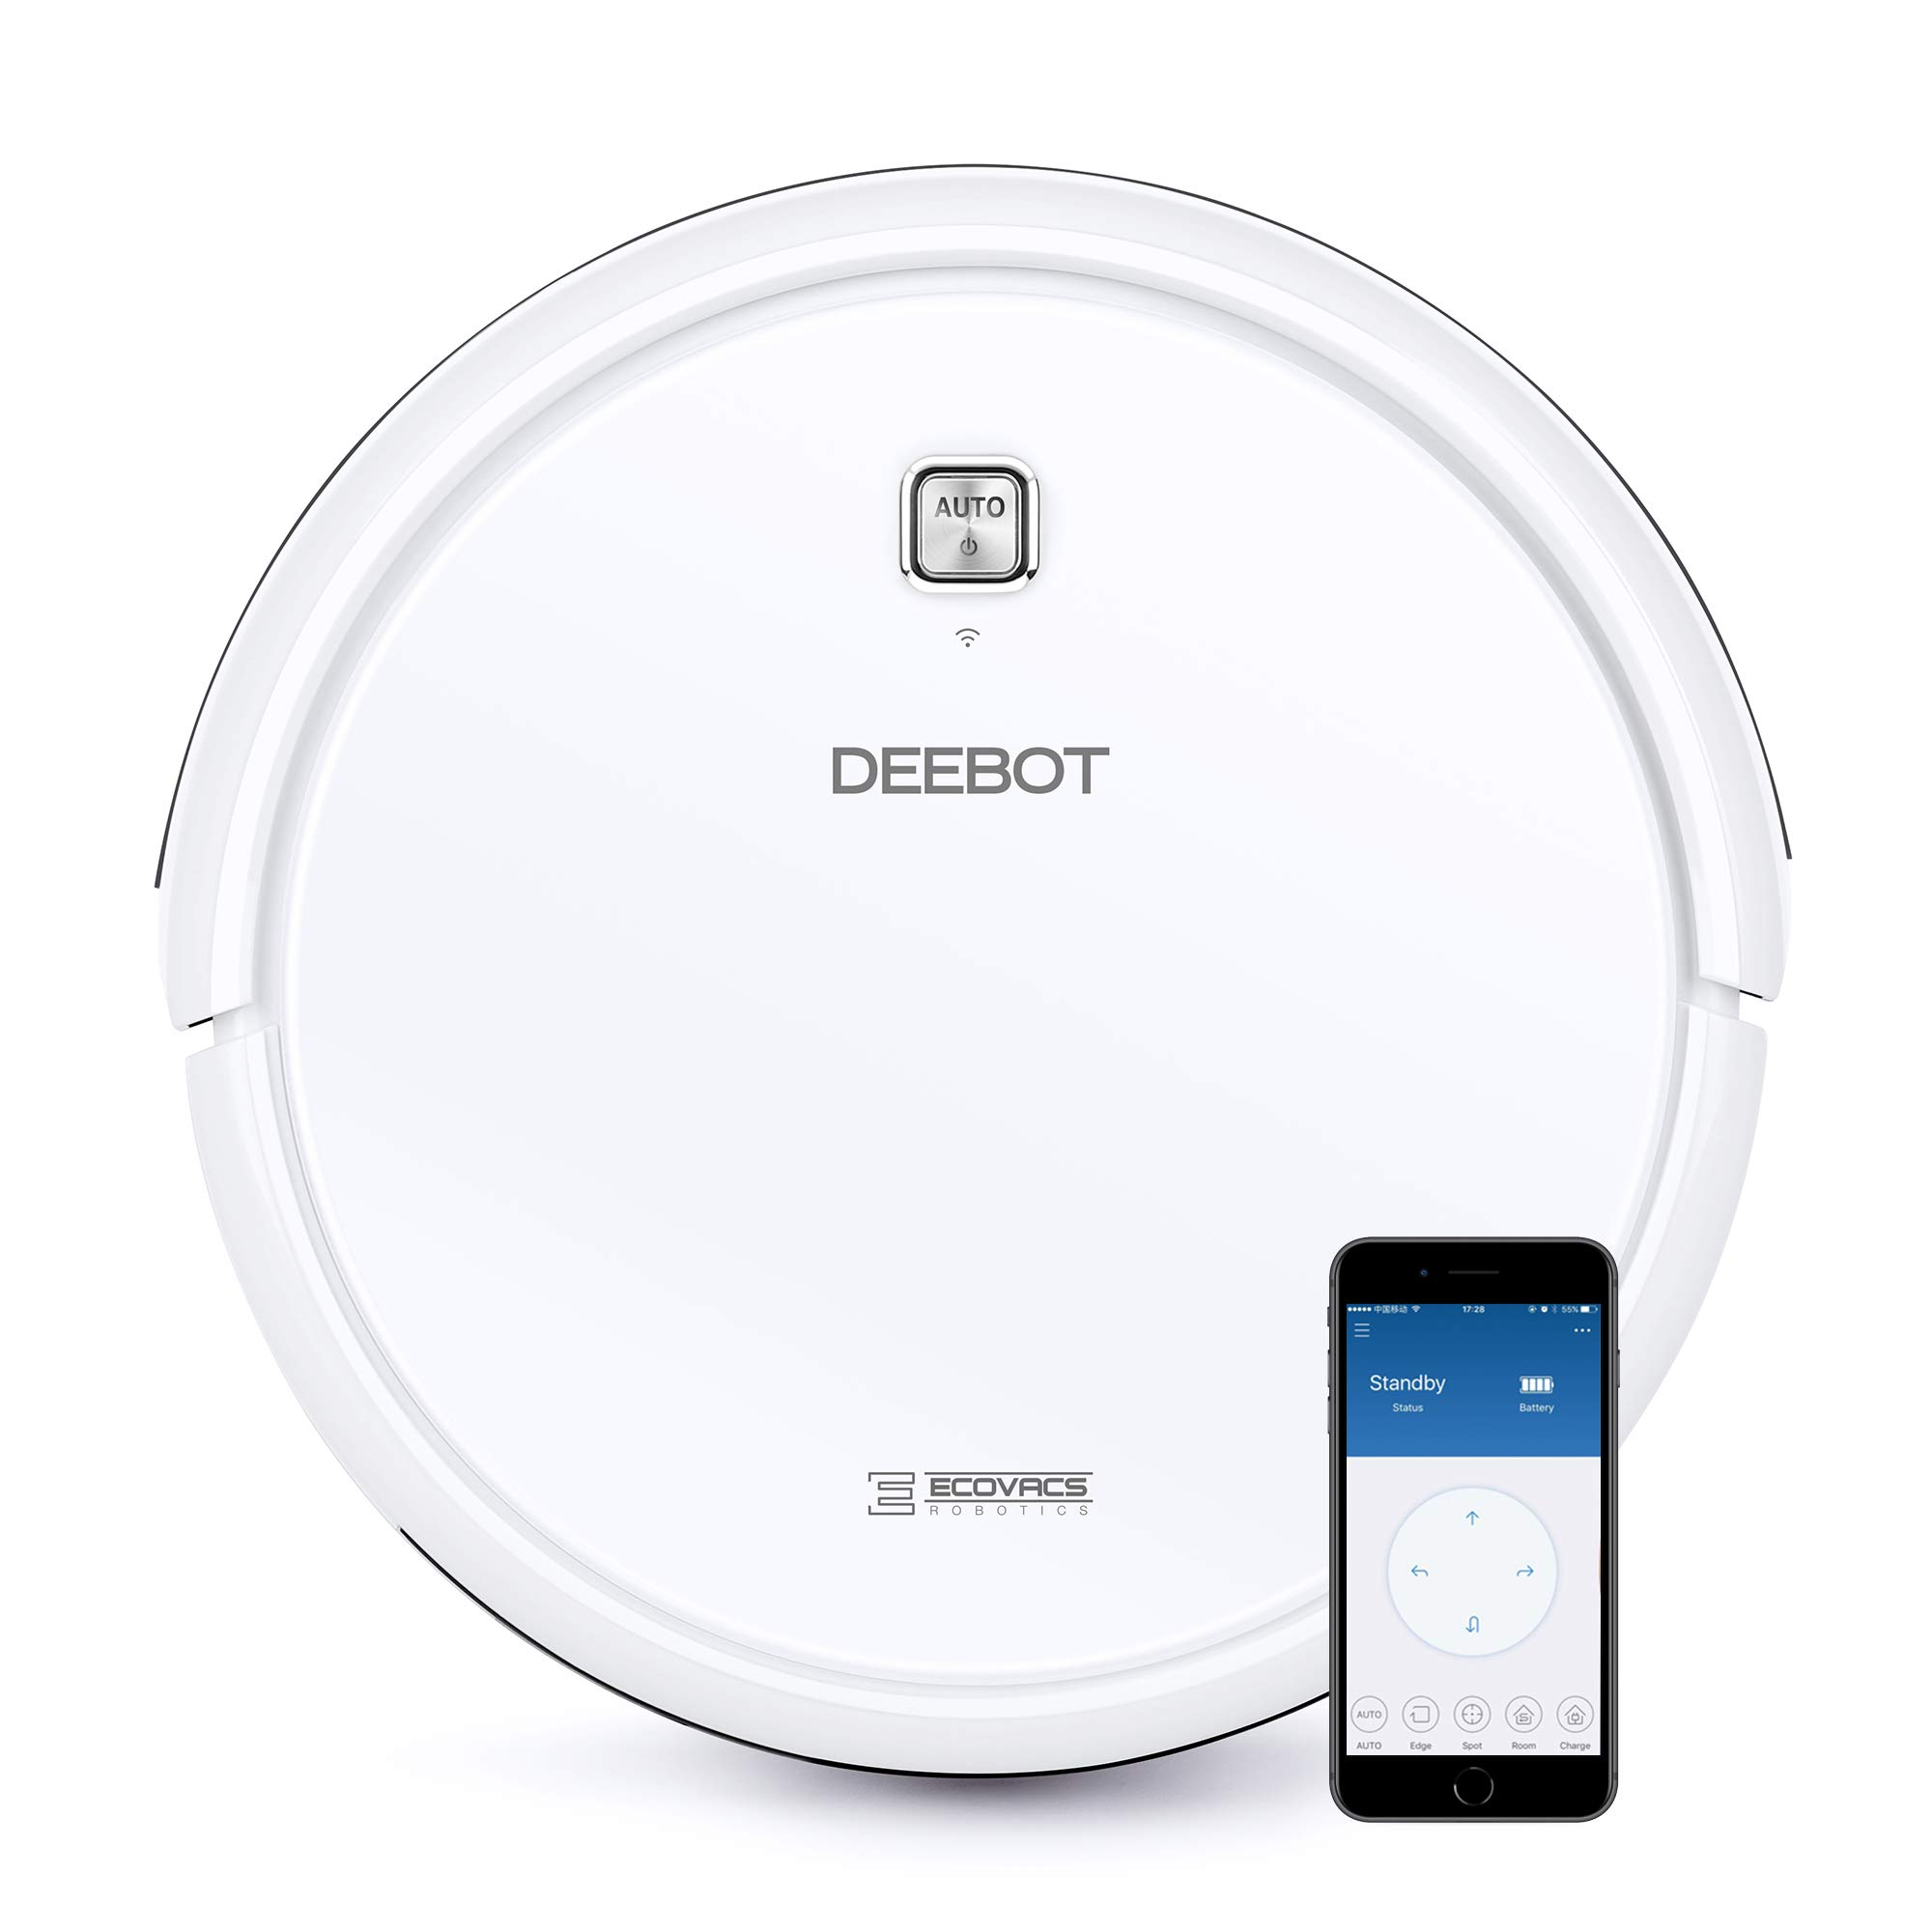 DEEBOT N79W+ Robotic Vacuum Cleaner with Max Power Suction, Up to 110 min Runtime, Hard Floors & Carpets, Works with Alexa, App Controls, Self-Charging, Quiet + 2 Year Warranty